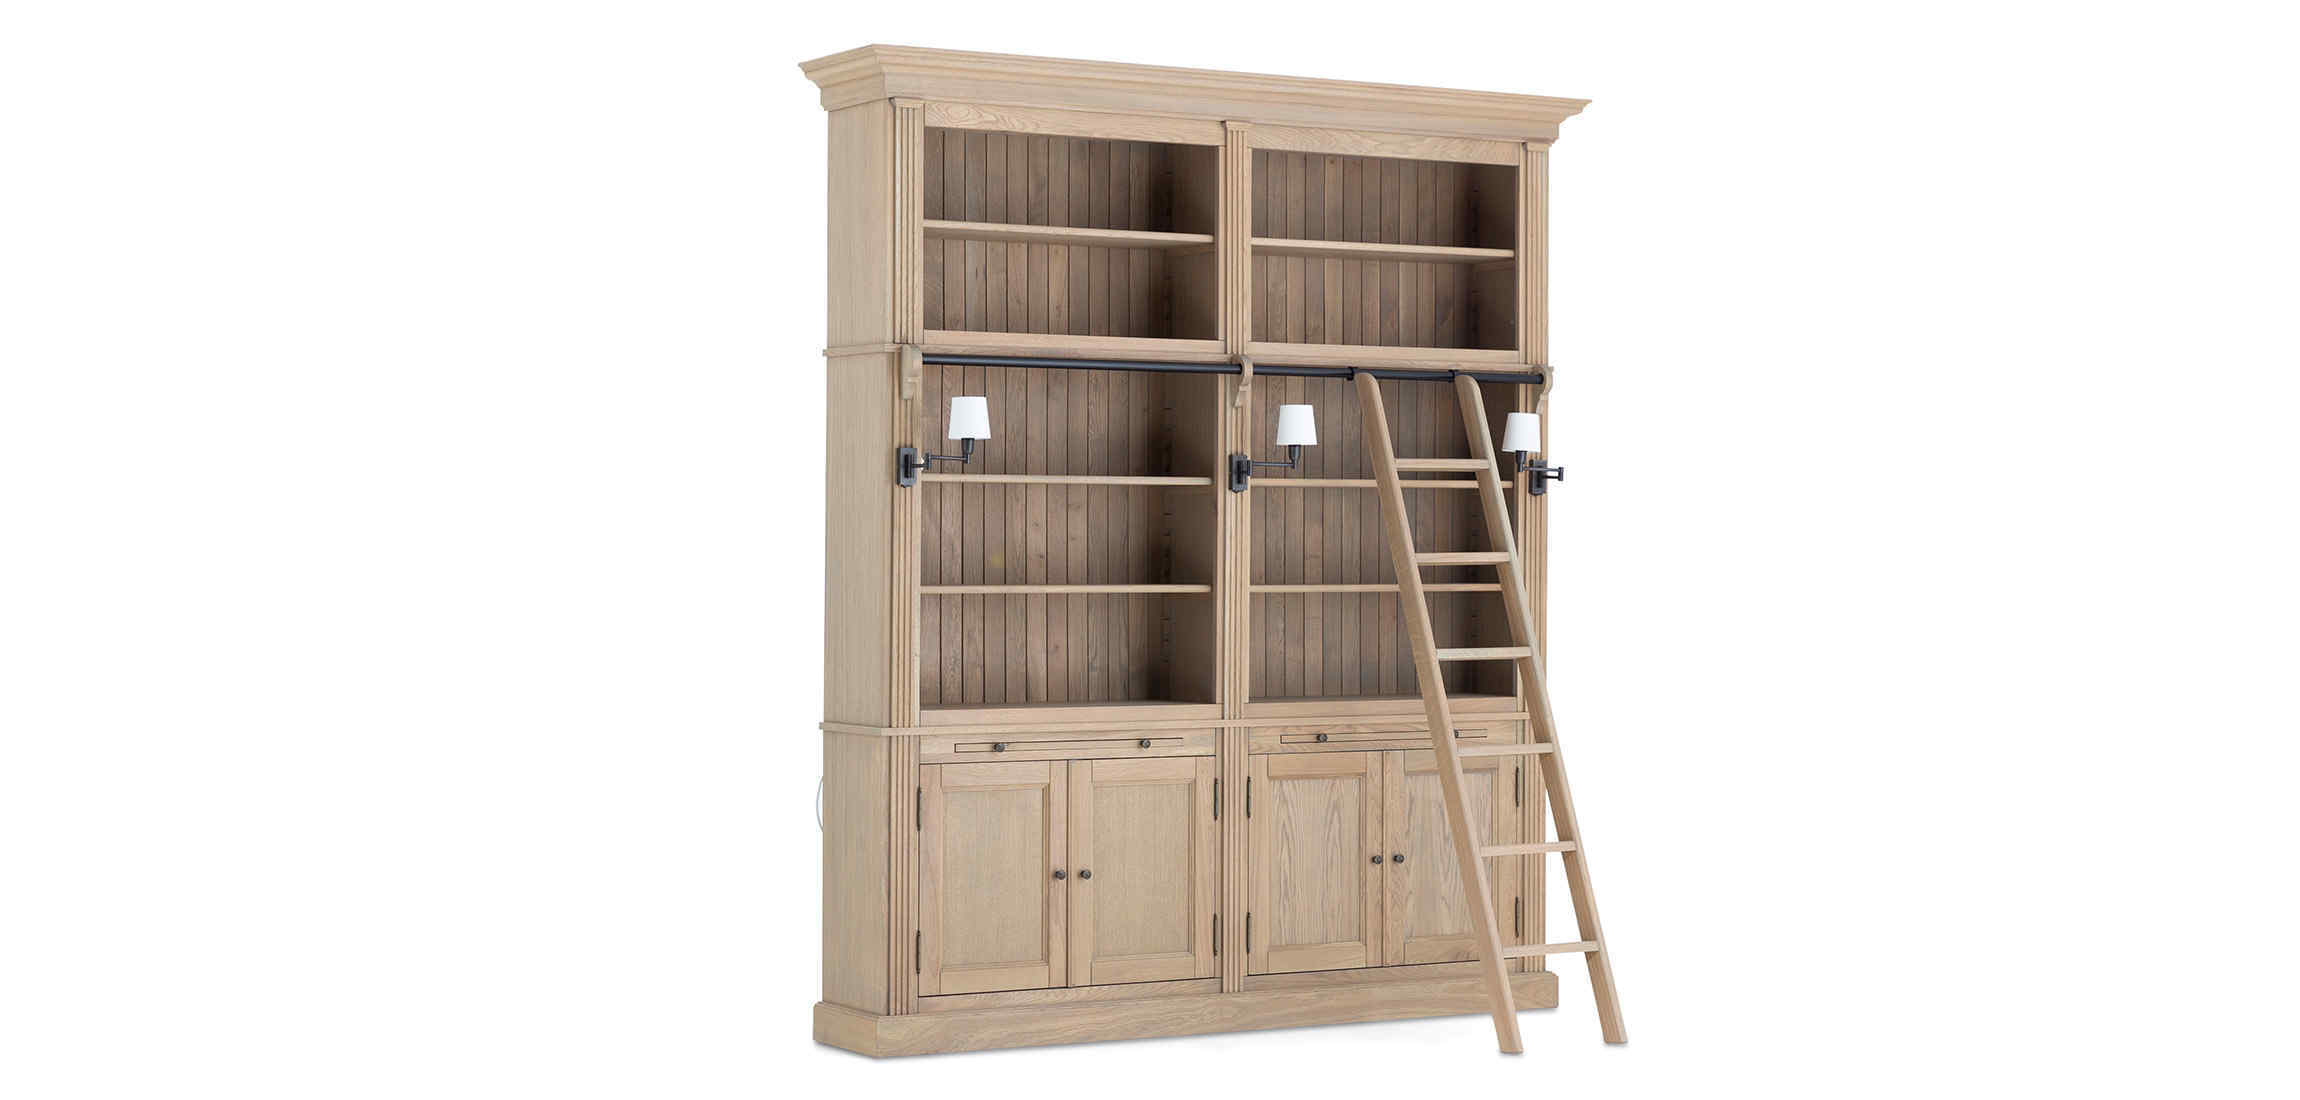 Balmore Bookcase Weathered Oak 2 Parts With Ladder